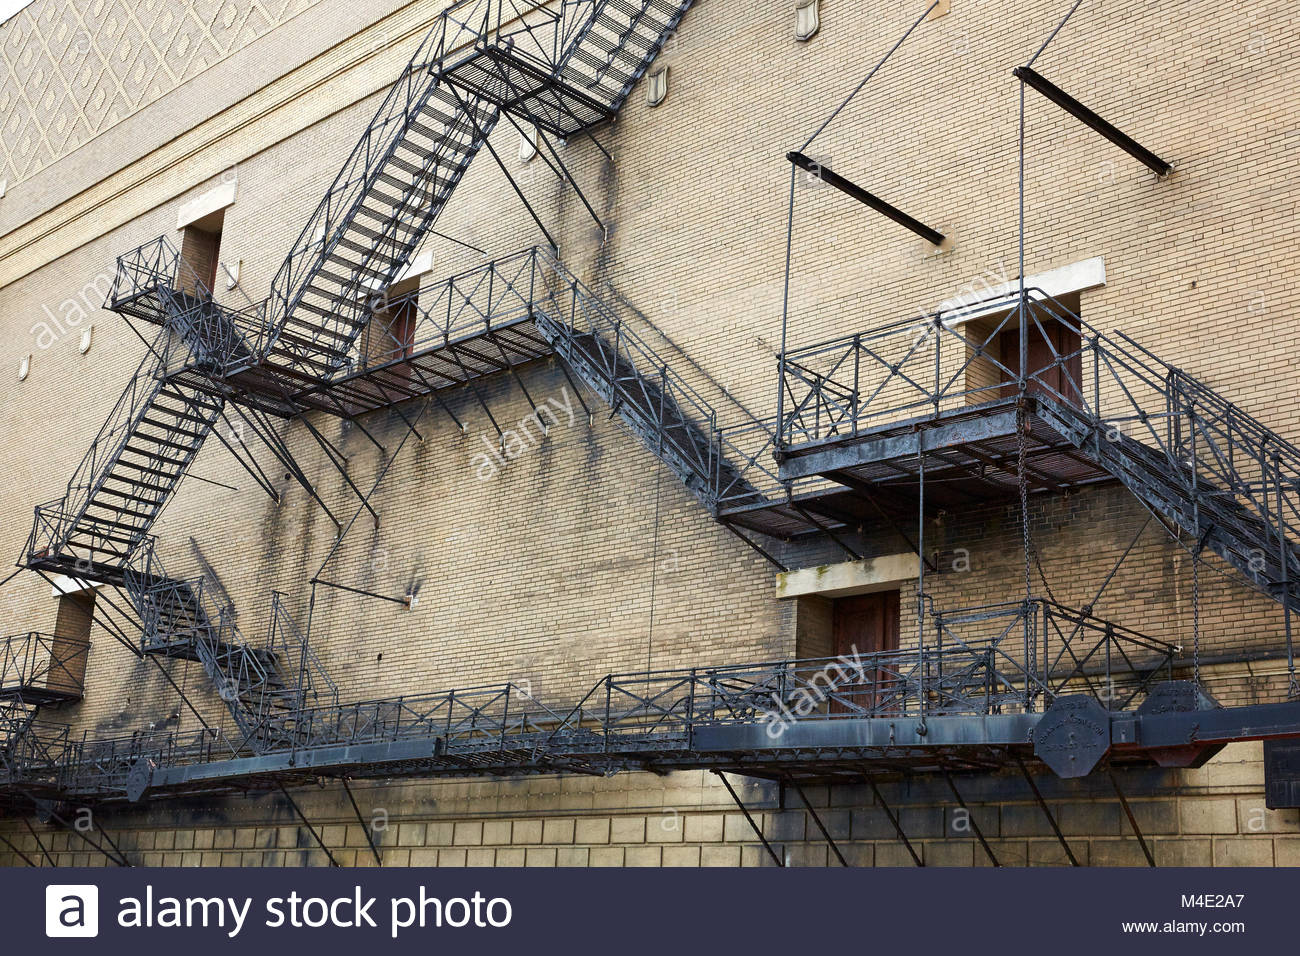 A Maze of Fire Scape stairs on an oldChicago  building, Chicago, Illinois - Stock Image